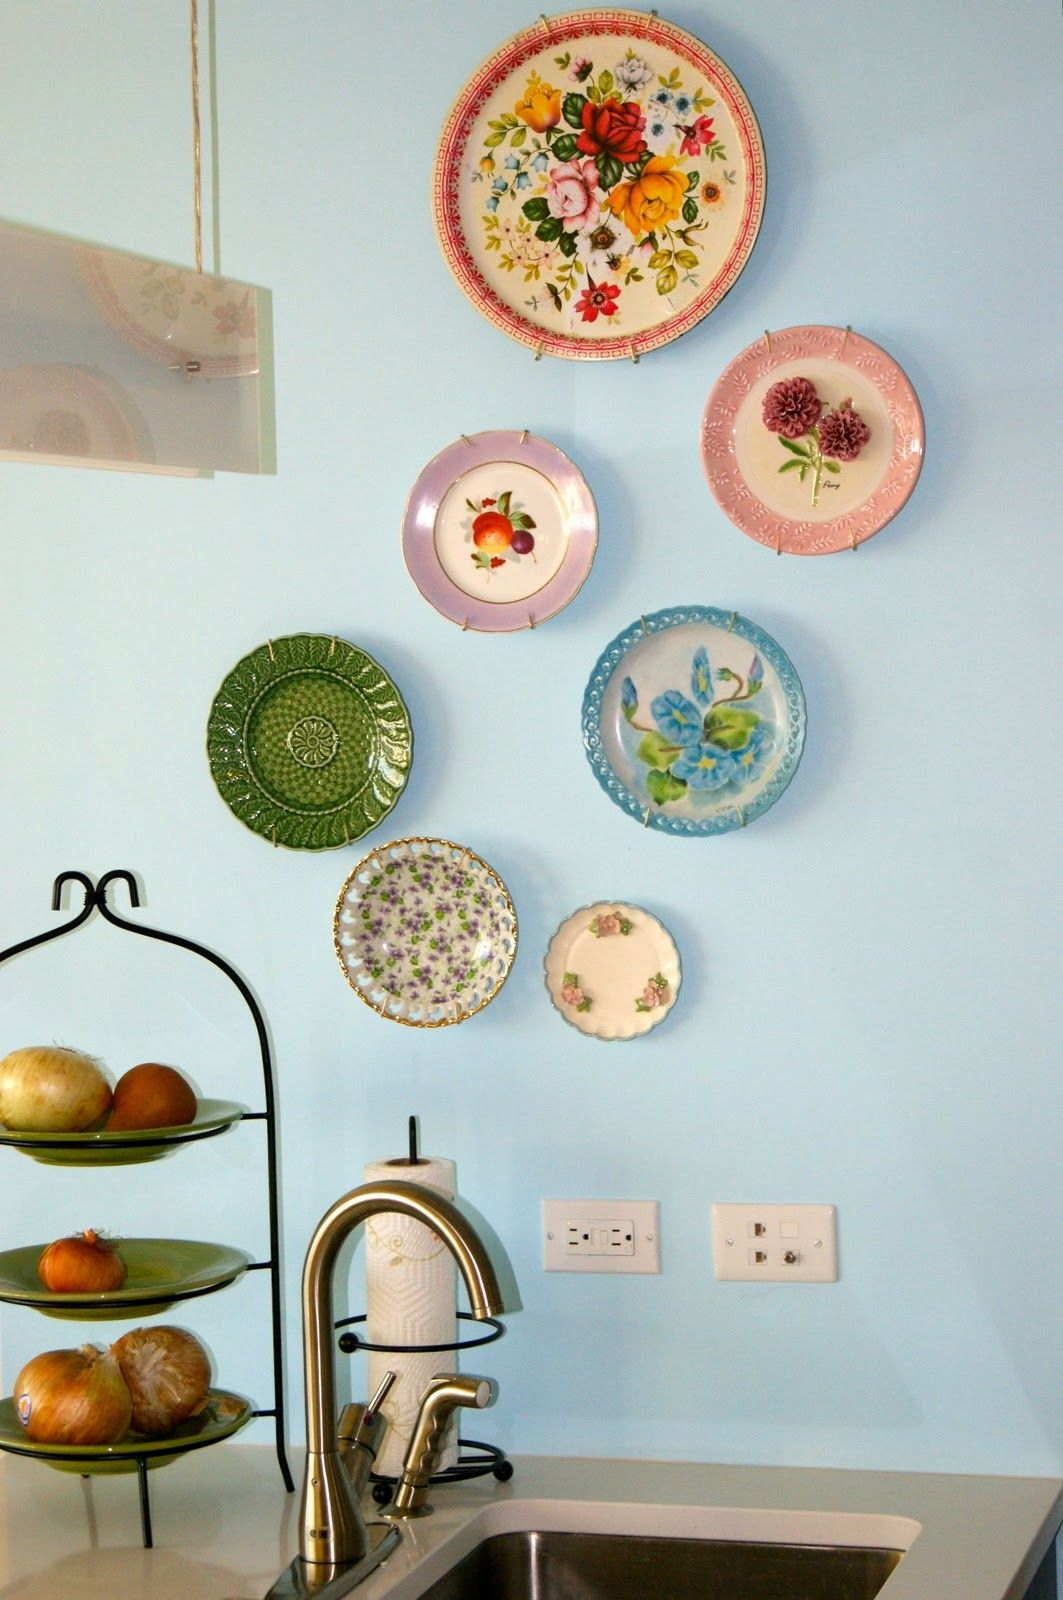 Asymmetry For My Little House Plates On Wall Kitchen